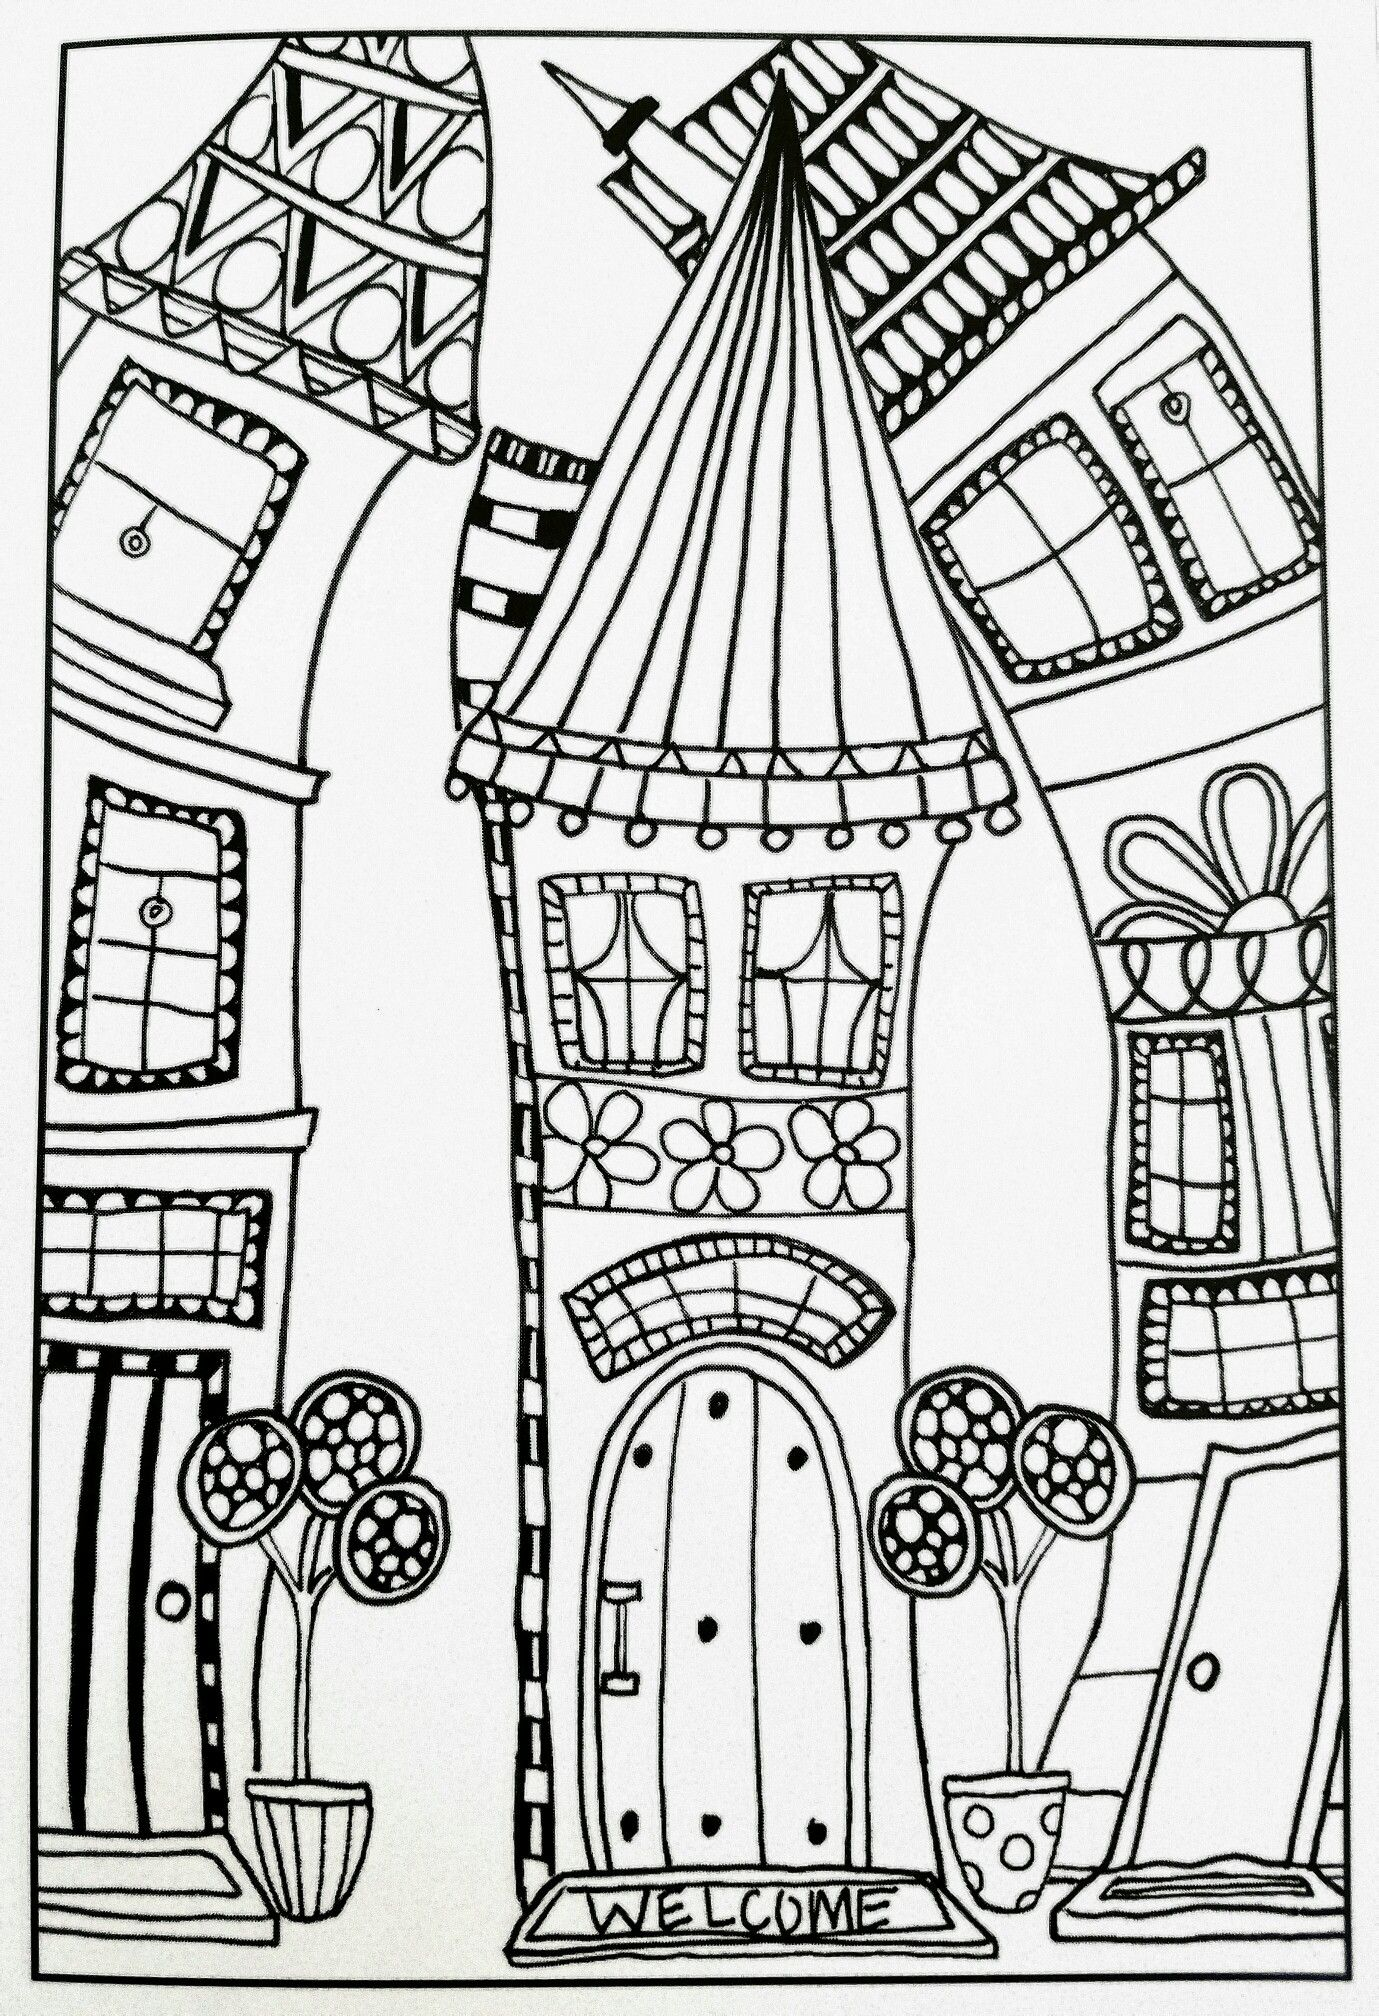 Whimsical Houses Coloring Pages